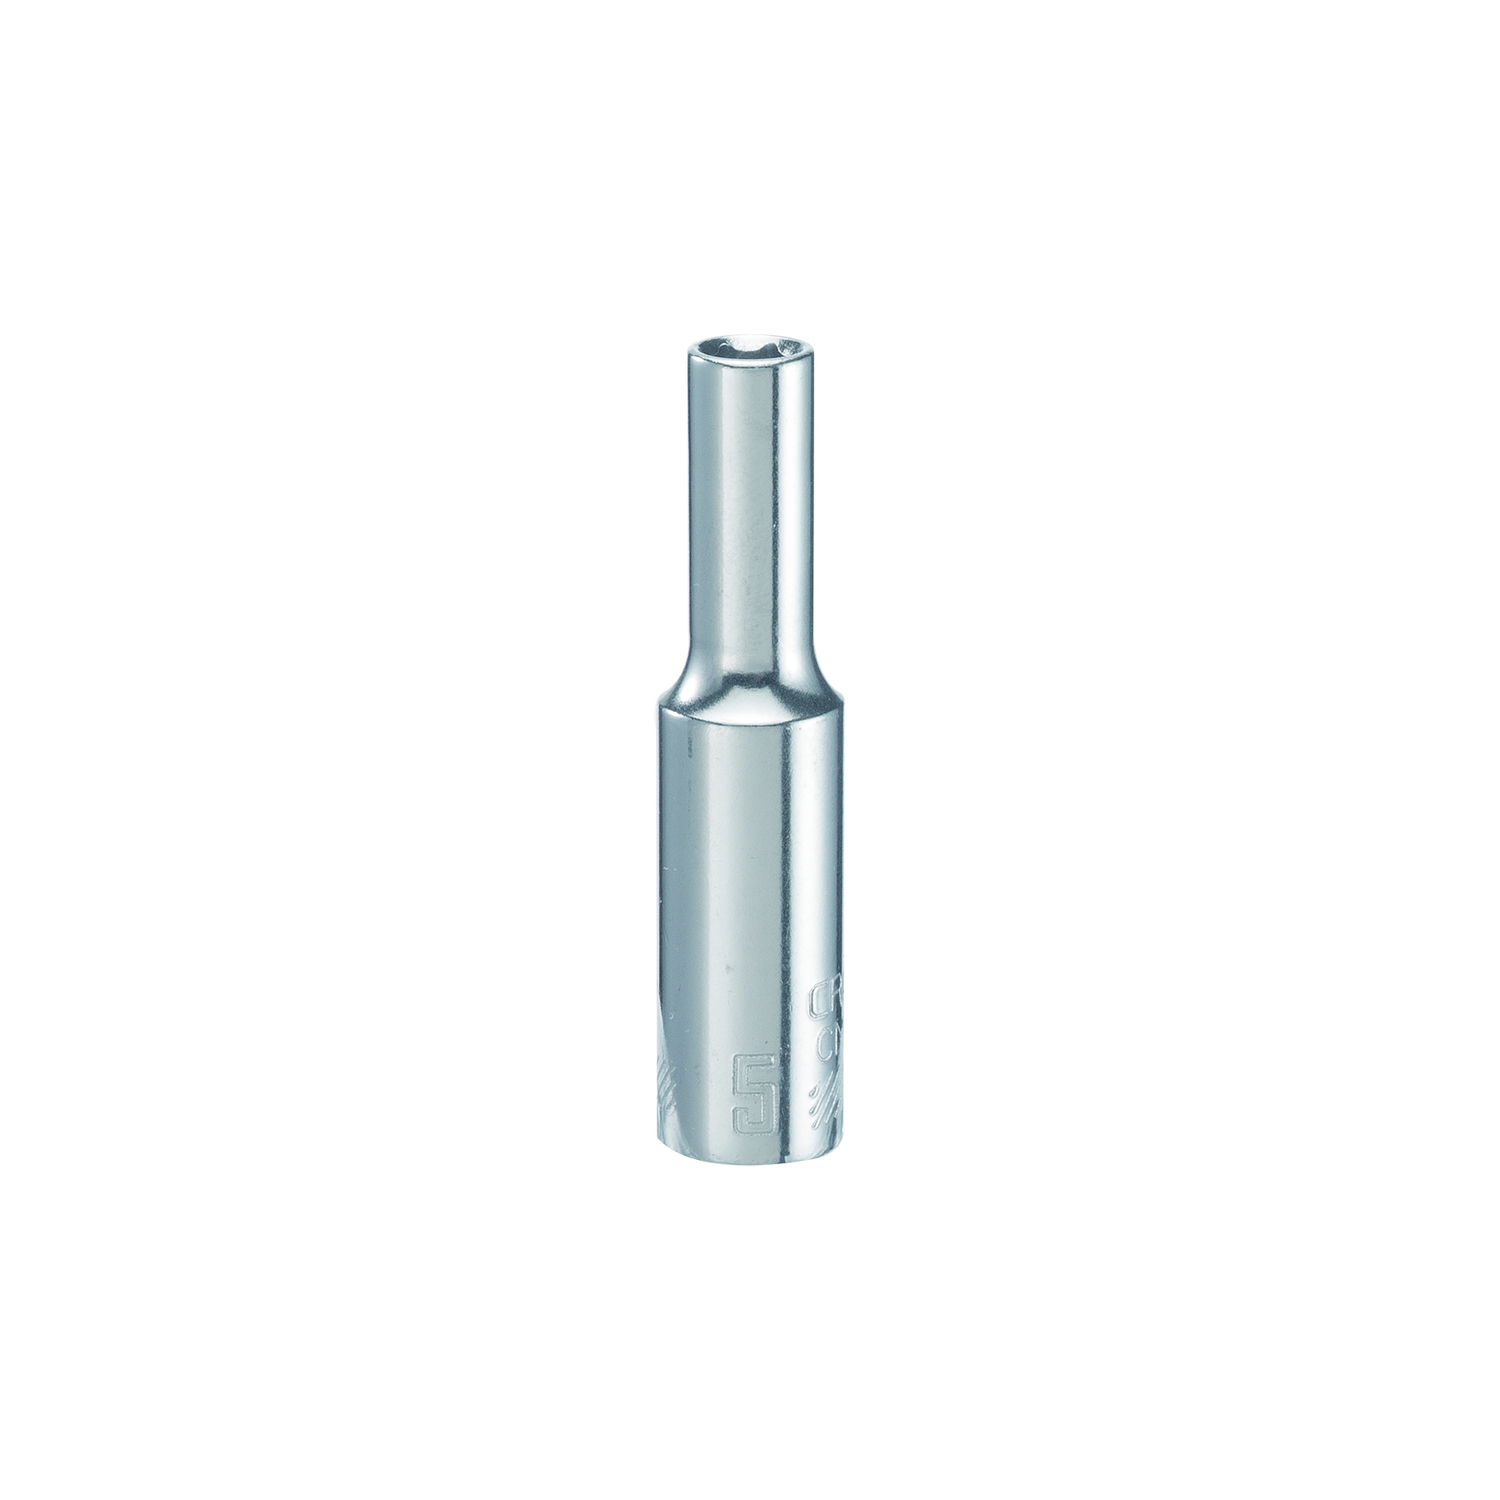 Craftsman  5 mm  x 1/4 in. drive  Metric  6 Point Deep  Socket  1 pc.